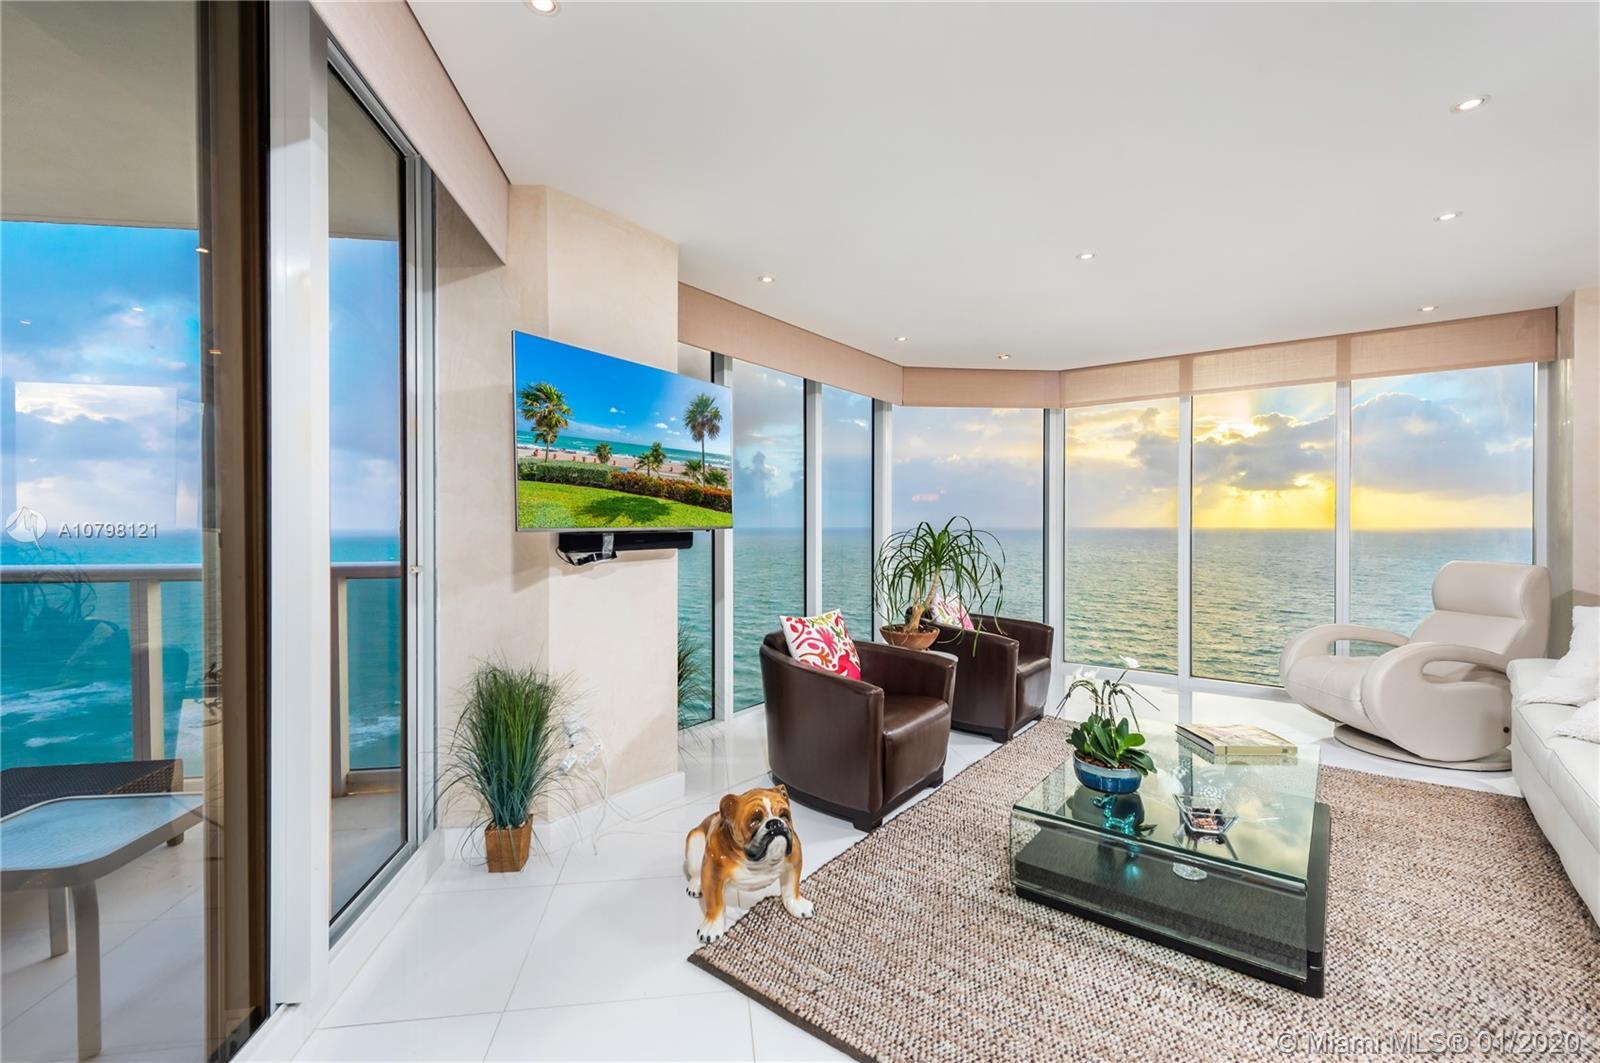 DIRECT OCEAN VIEW 3bd/4.5bath fully remodeled apartment.